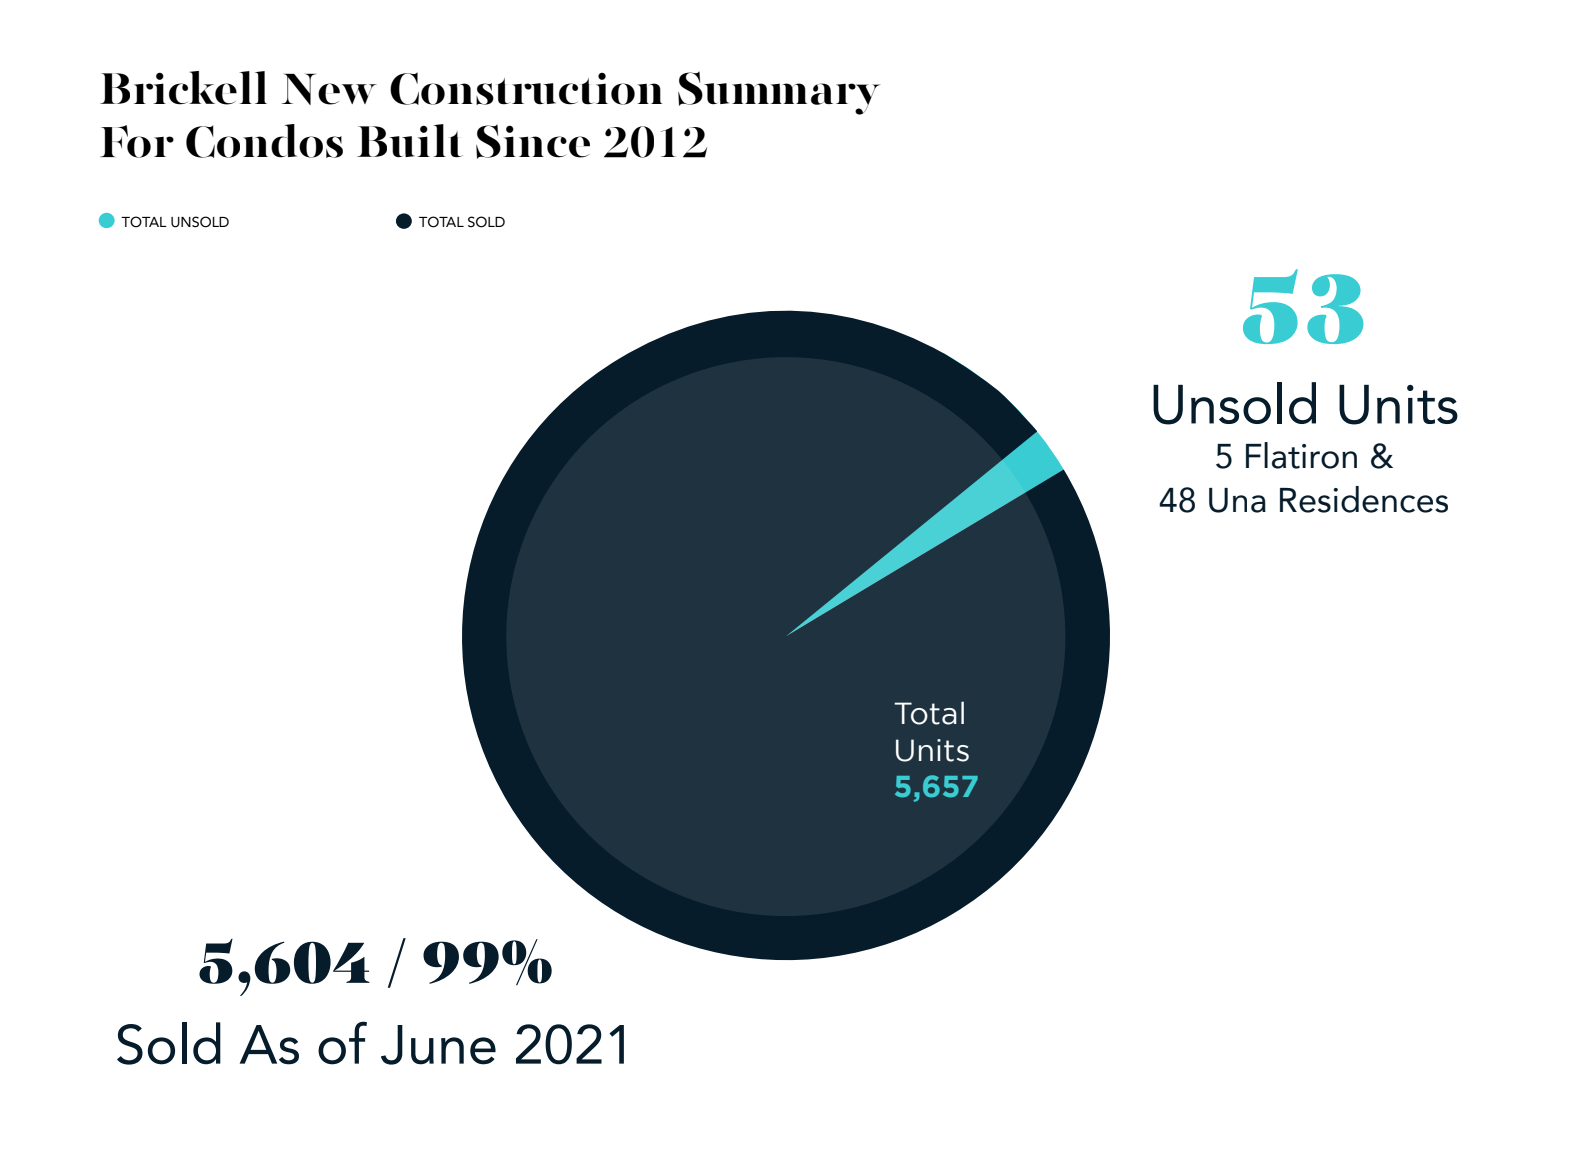 2021 South Florida Brickell Report. Courtesy of RelatedISG Realty.